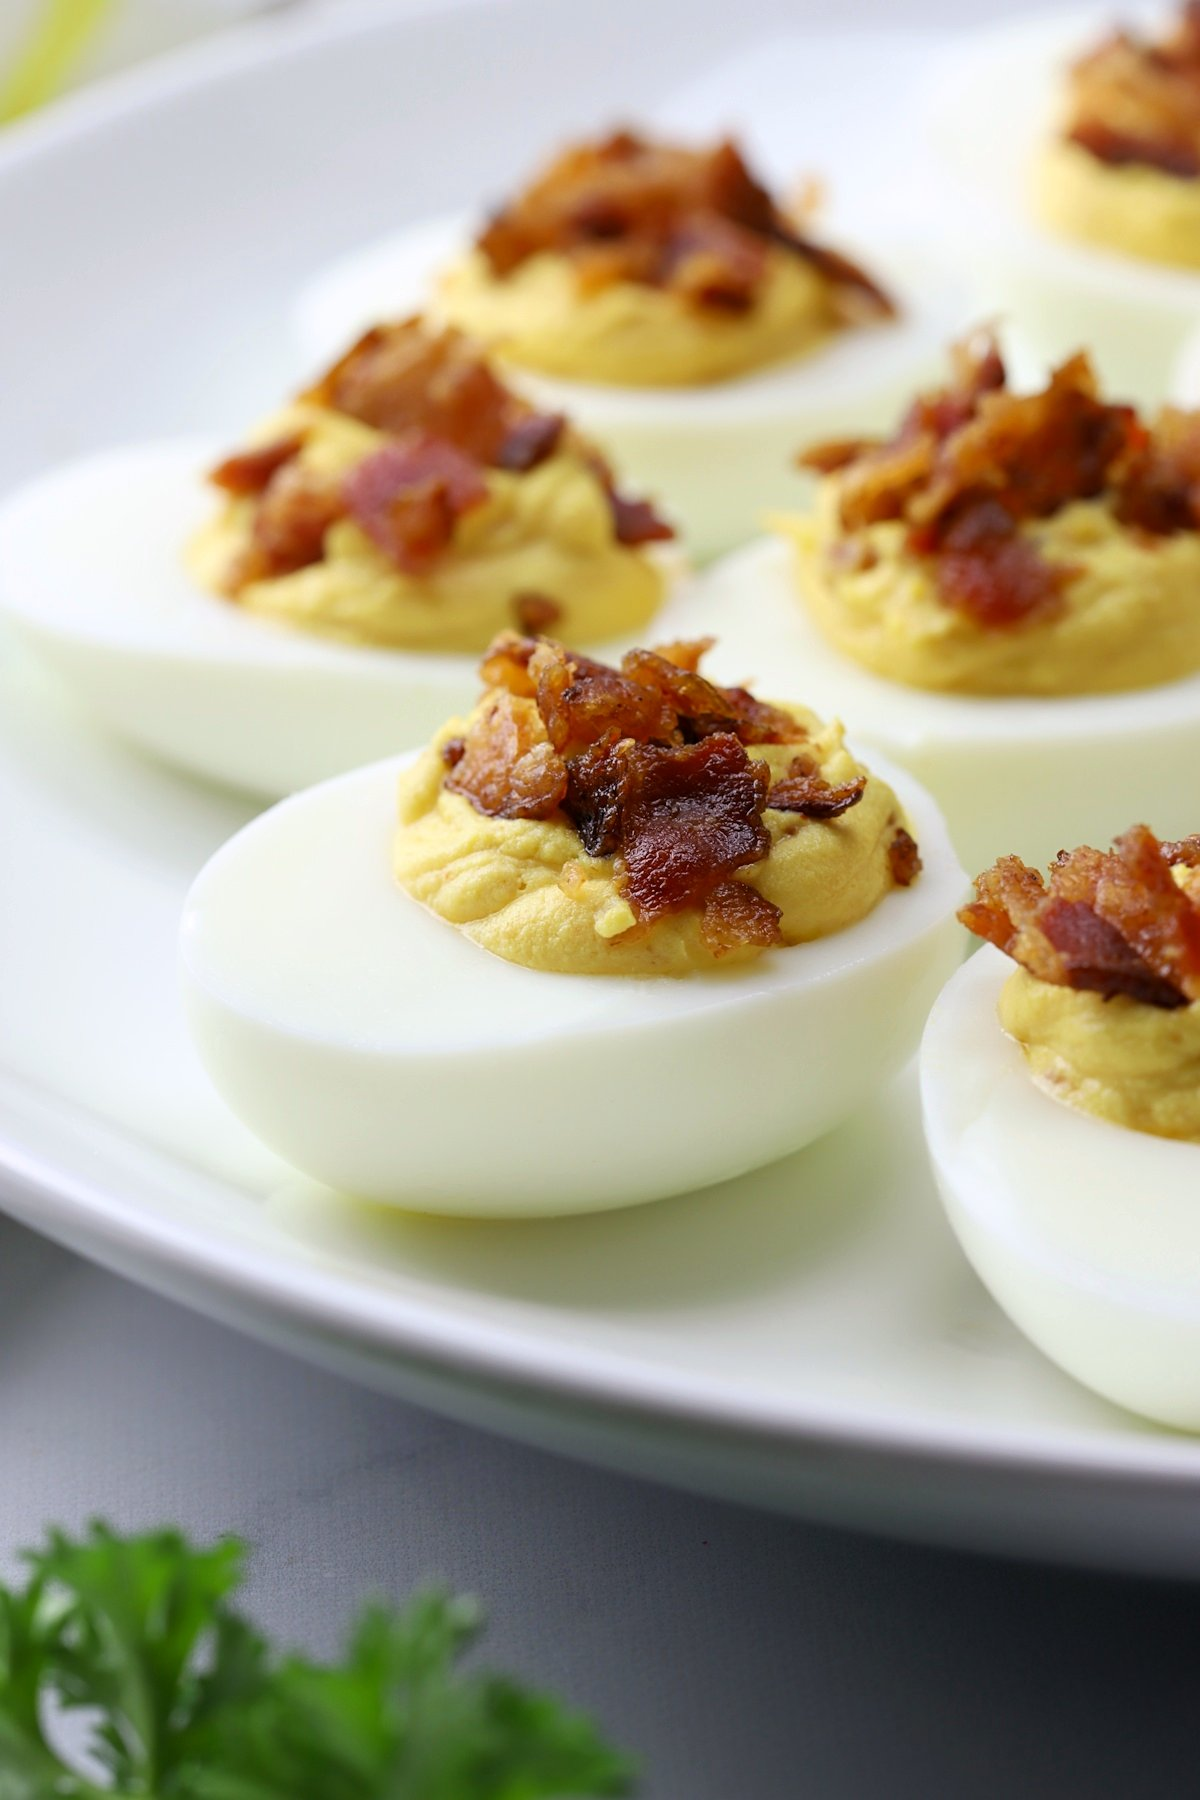 Deviled egg topped with crumbled bacon on a white plate.